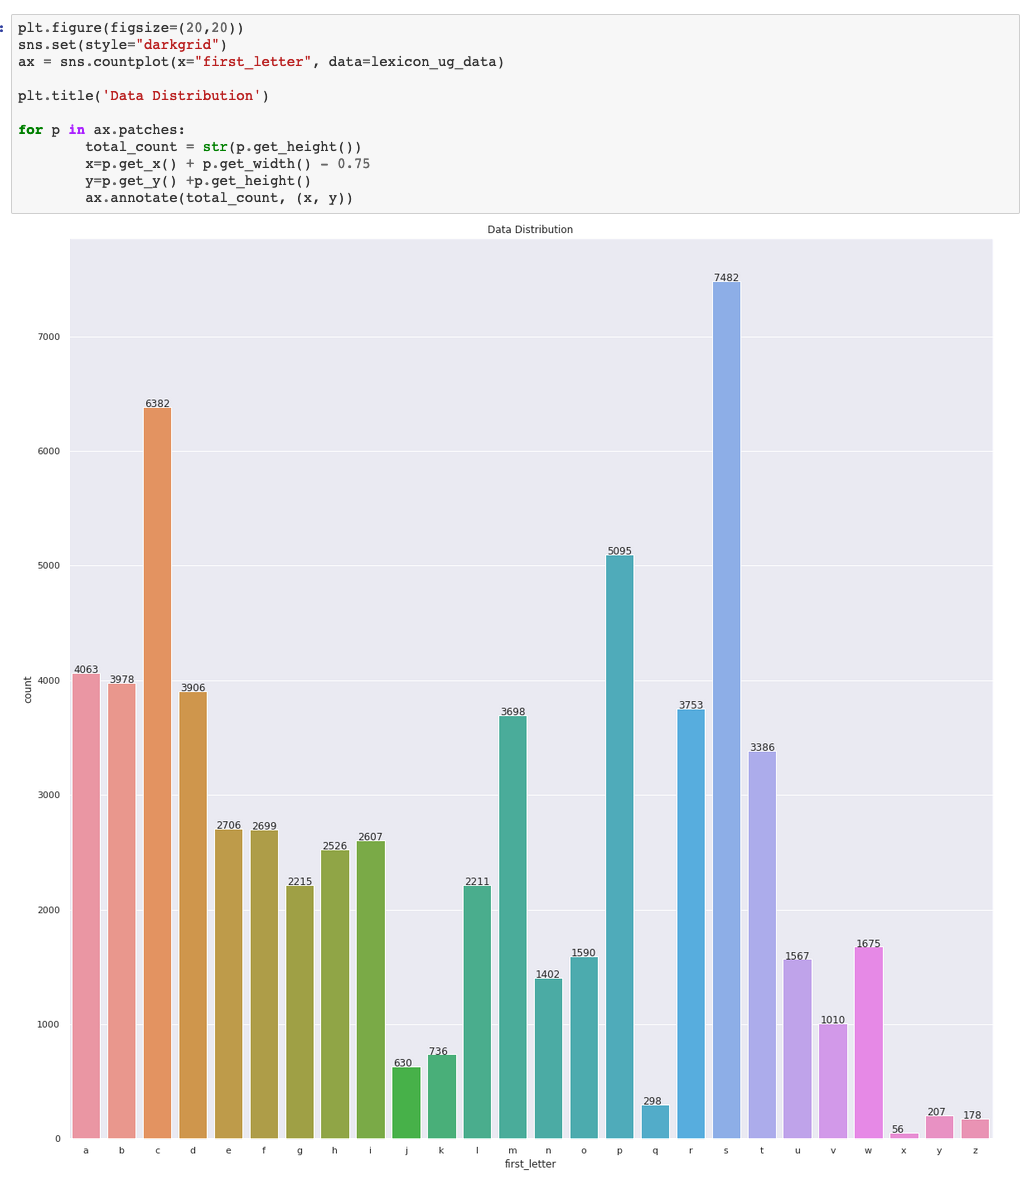 Sentiment analysis bar chart for first letter of words